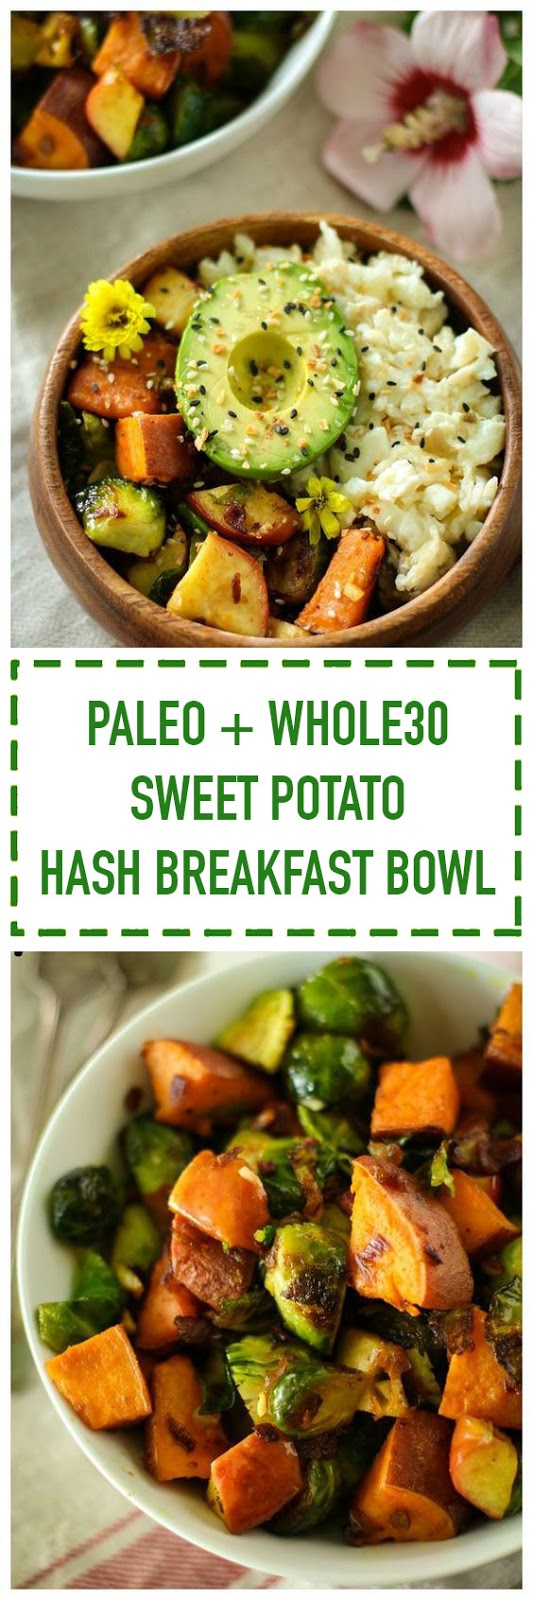 Paleo Sweet Potato Hash Breakfast Bowl